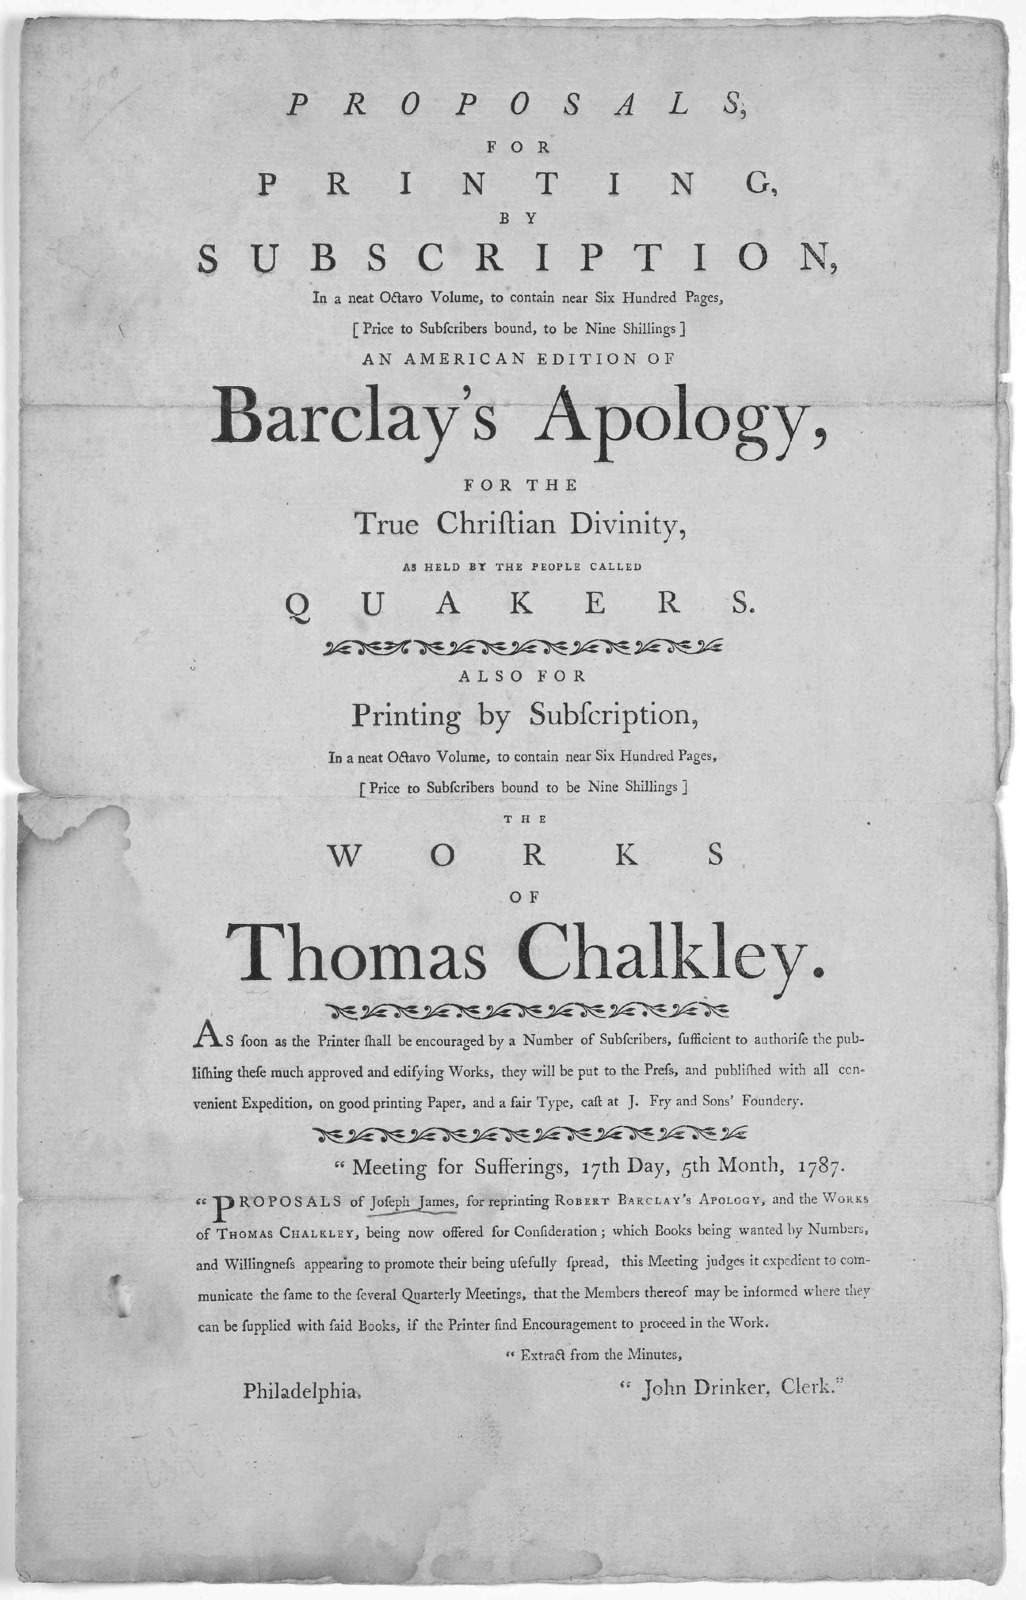 Proposals for printing by subscription ... an American edition of Barclay's Apology for the true Christian divinity, as held by the people called Quakers. Also for printing by subscription ... The works of Thomas Chalkley ... Proposals of Joseph